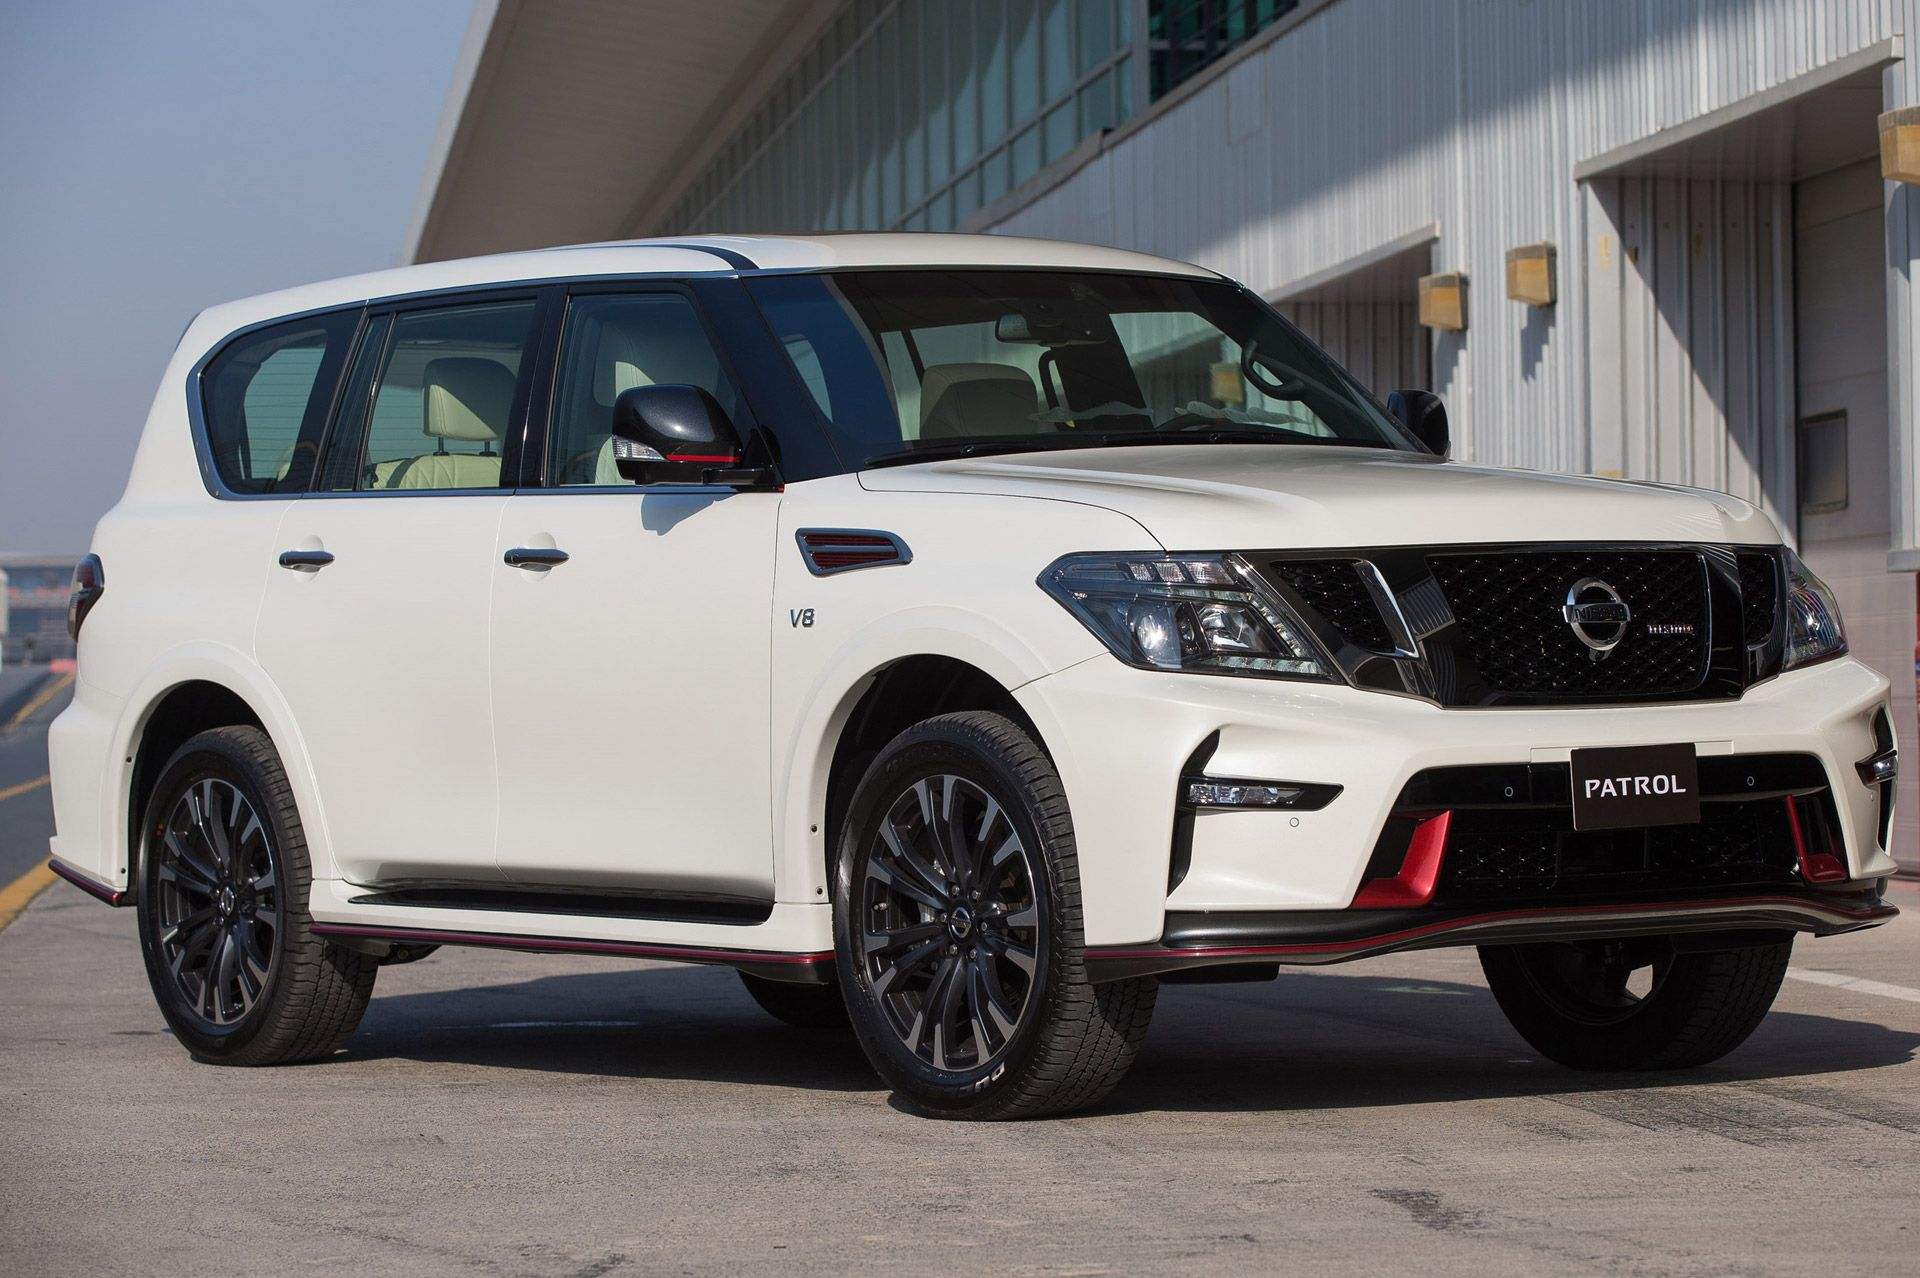 2017 Nissan Patrol Redesign Specs And Price >> 2017 Nissan Patrol Diesel Engine Prediction Carmodel Pinterest